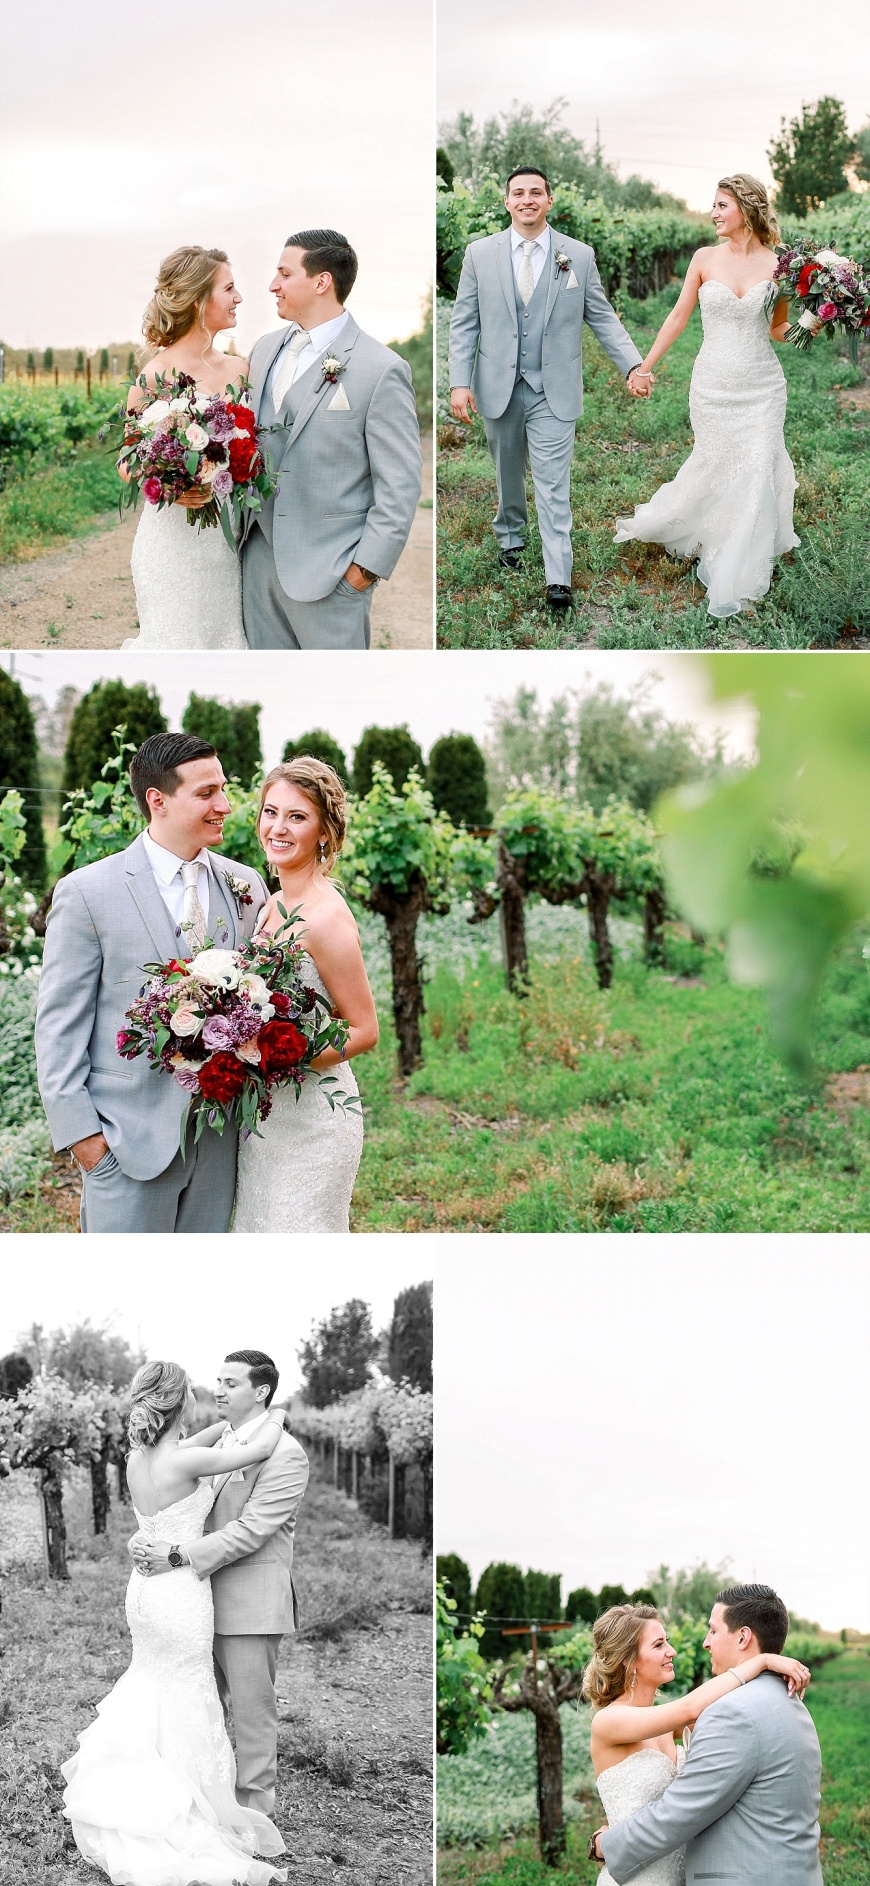 Vintner's-Inn-Wedding-Photographer_1072.jpg